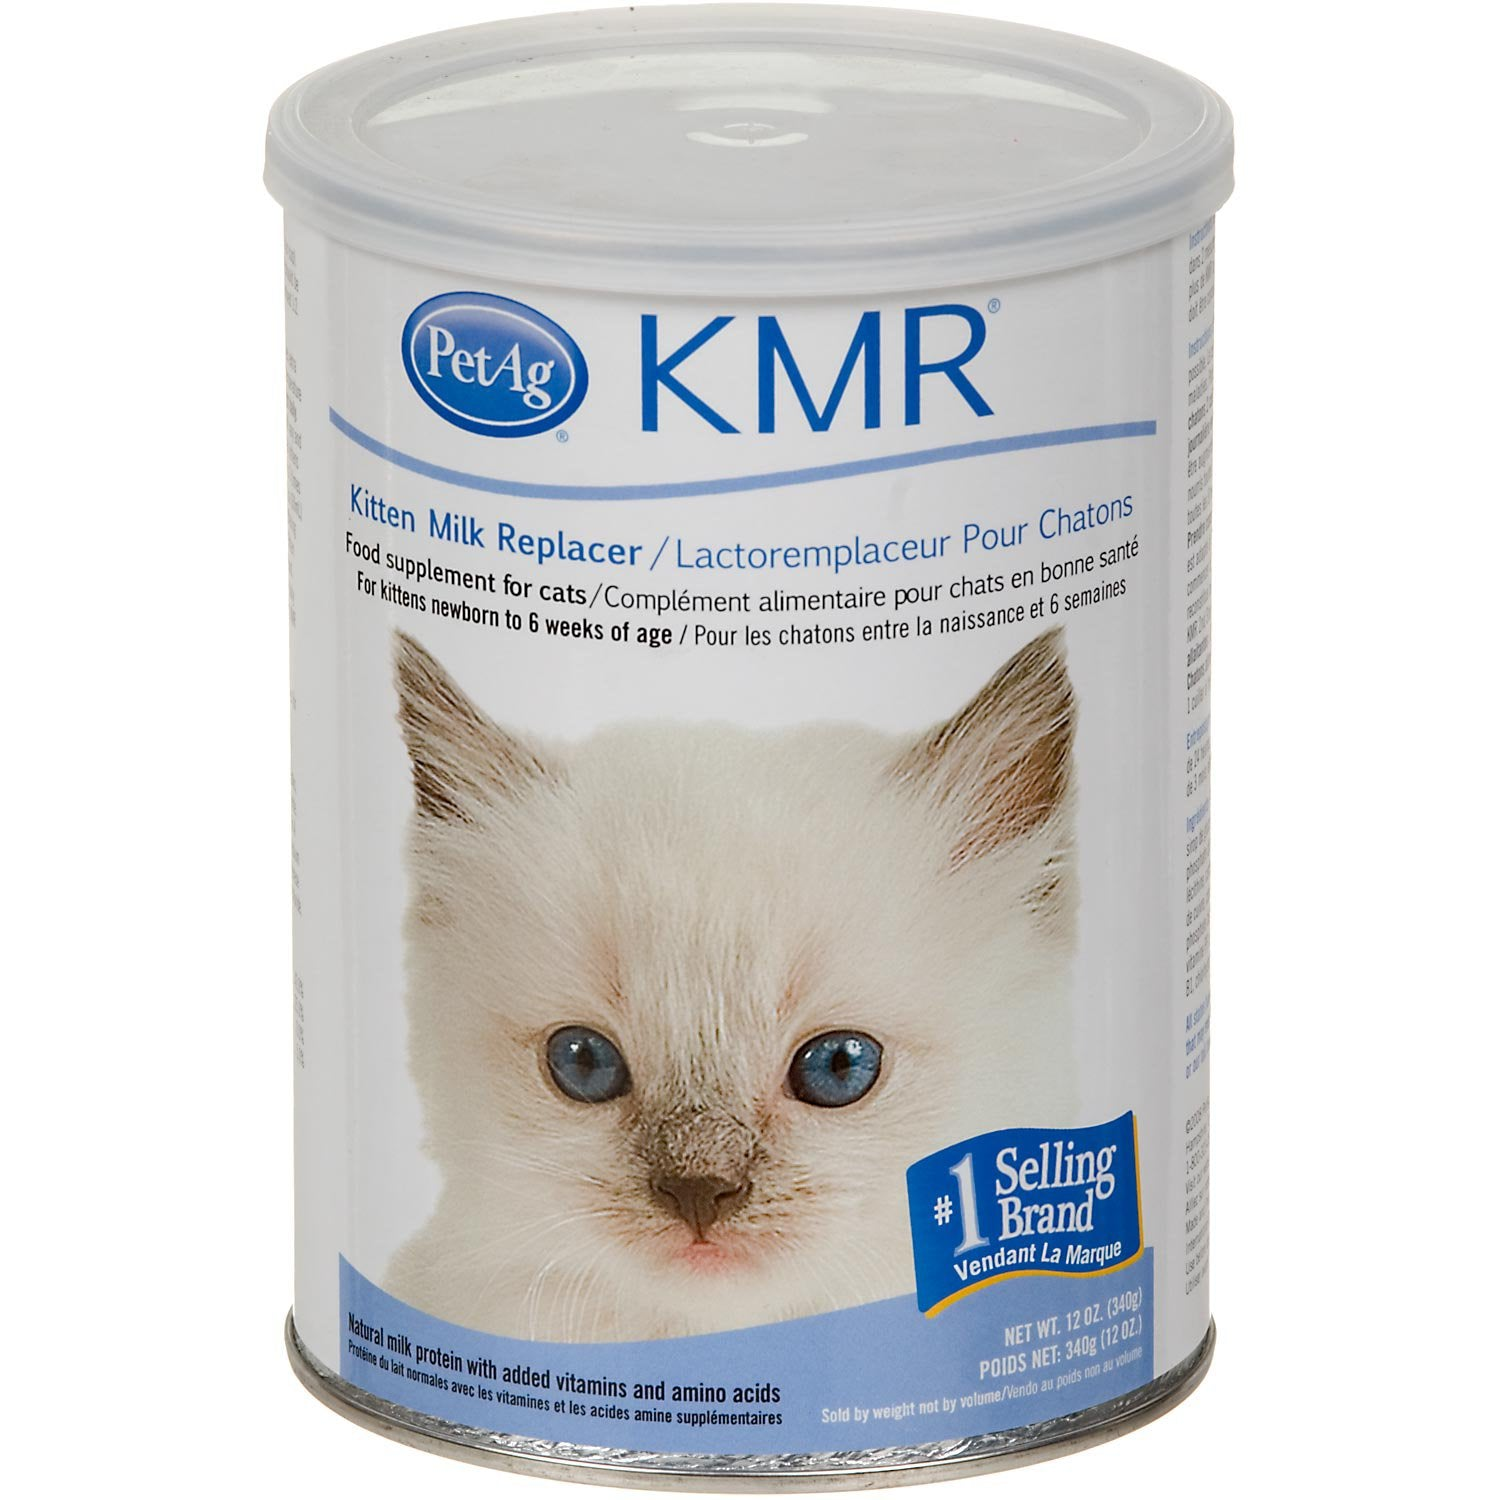 KMR Kitten Milk Replacer Powder